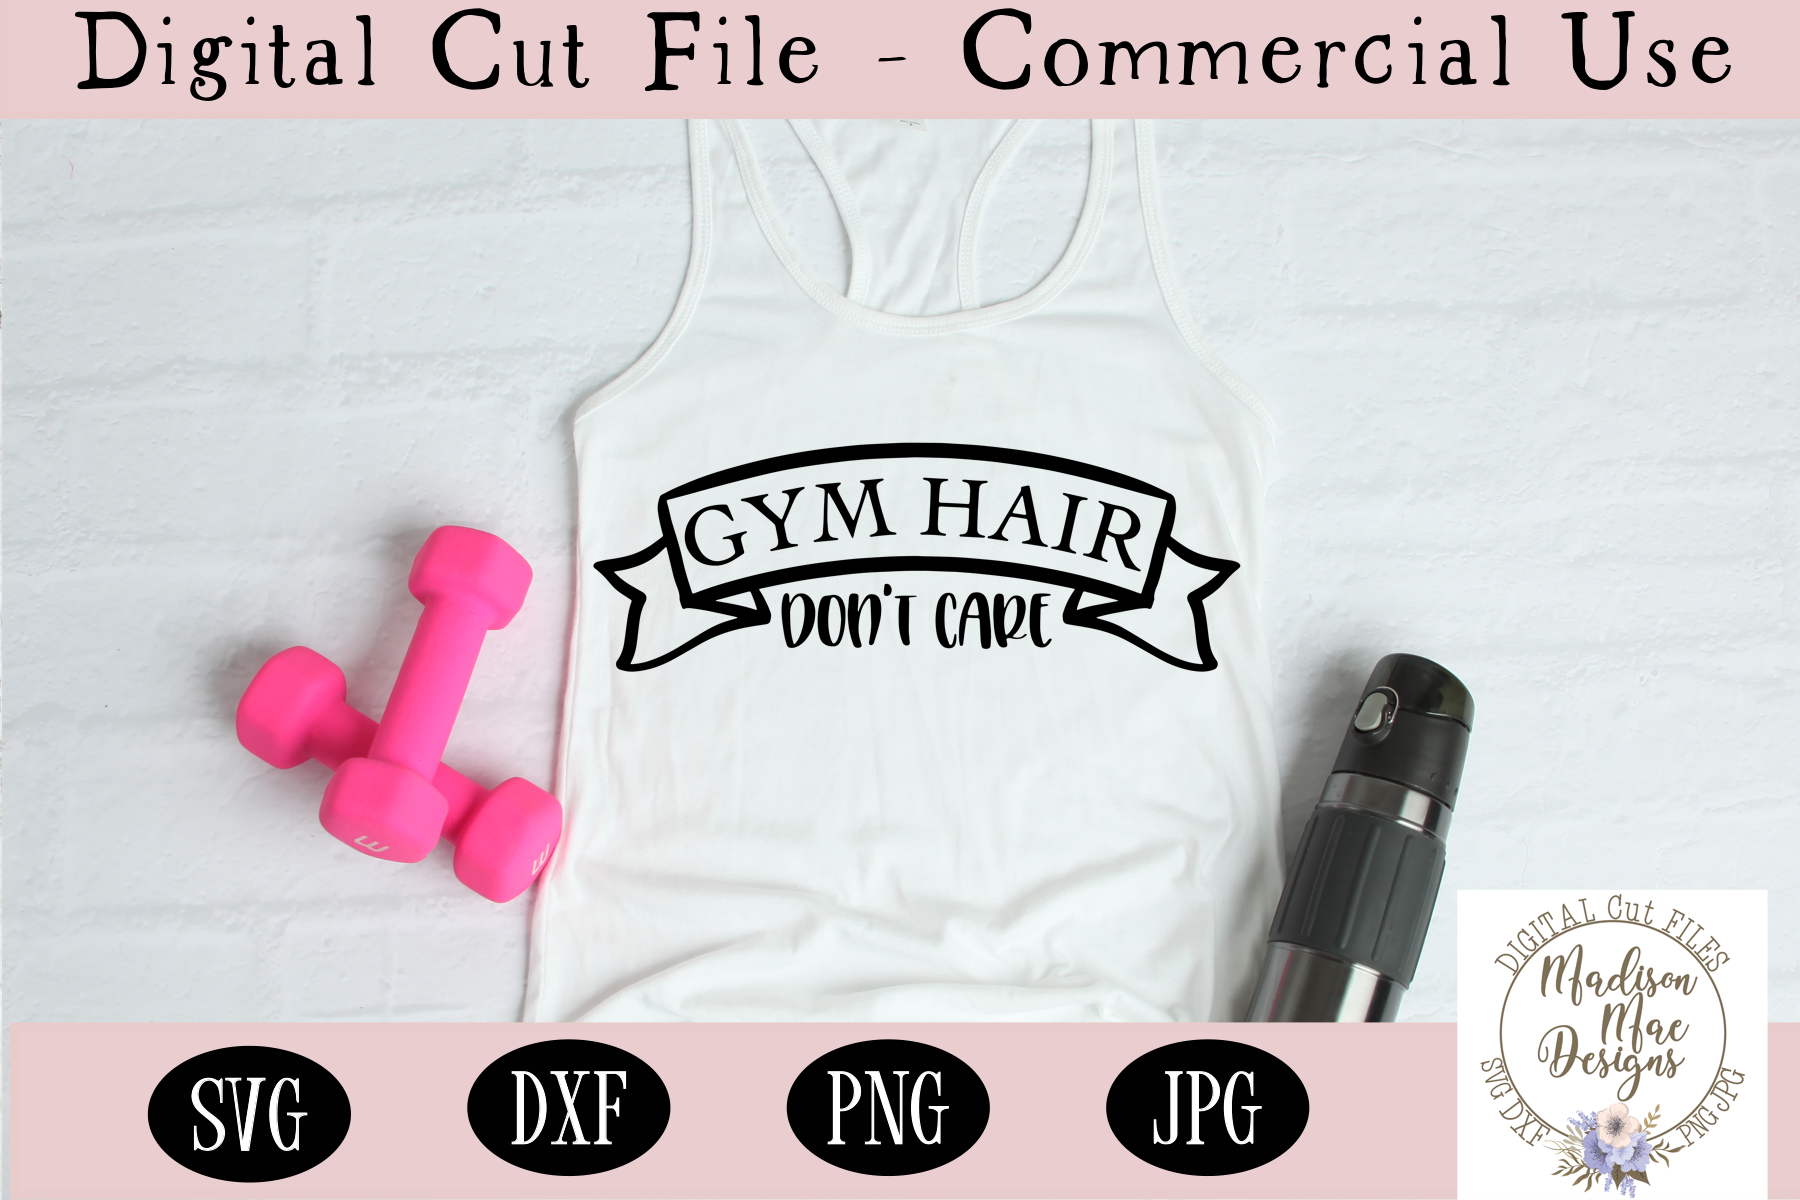 Gym Hair Don't Care SVG | Workout SVG | Fitness SVG example image 1